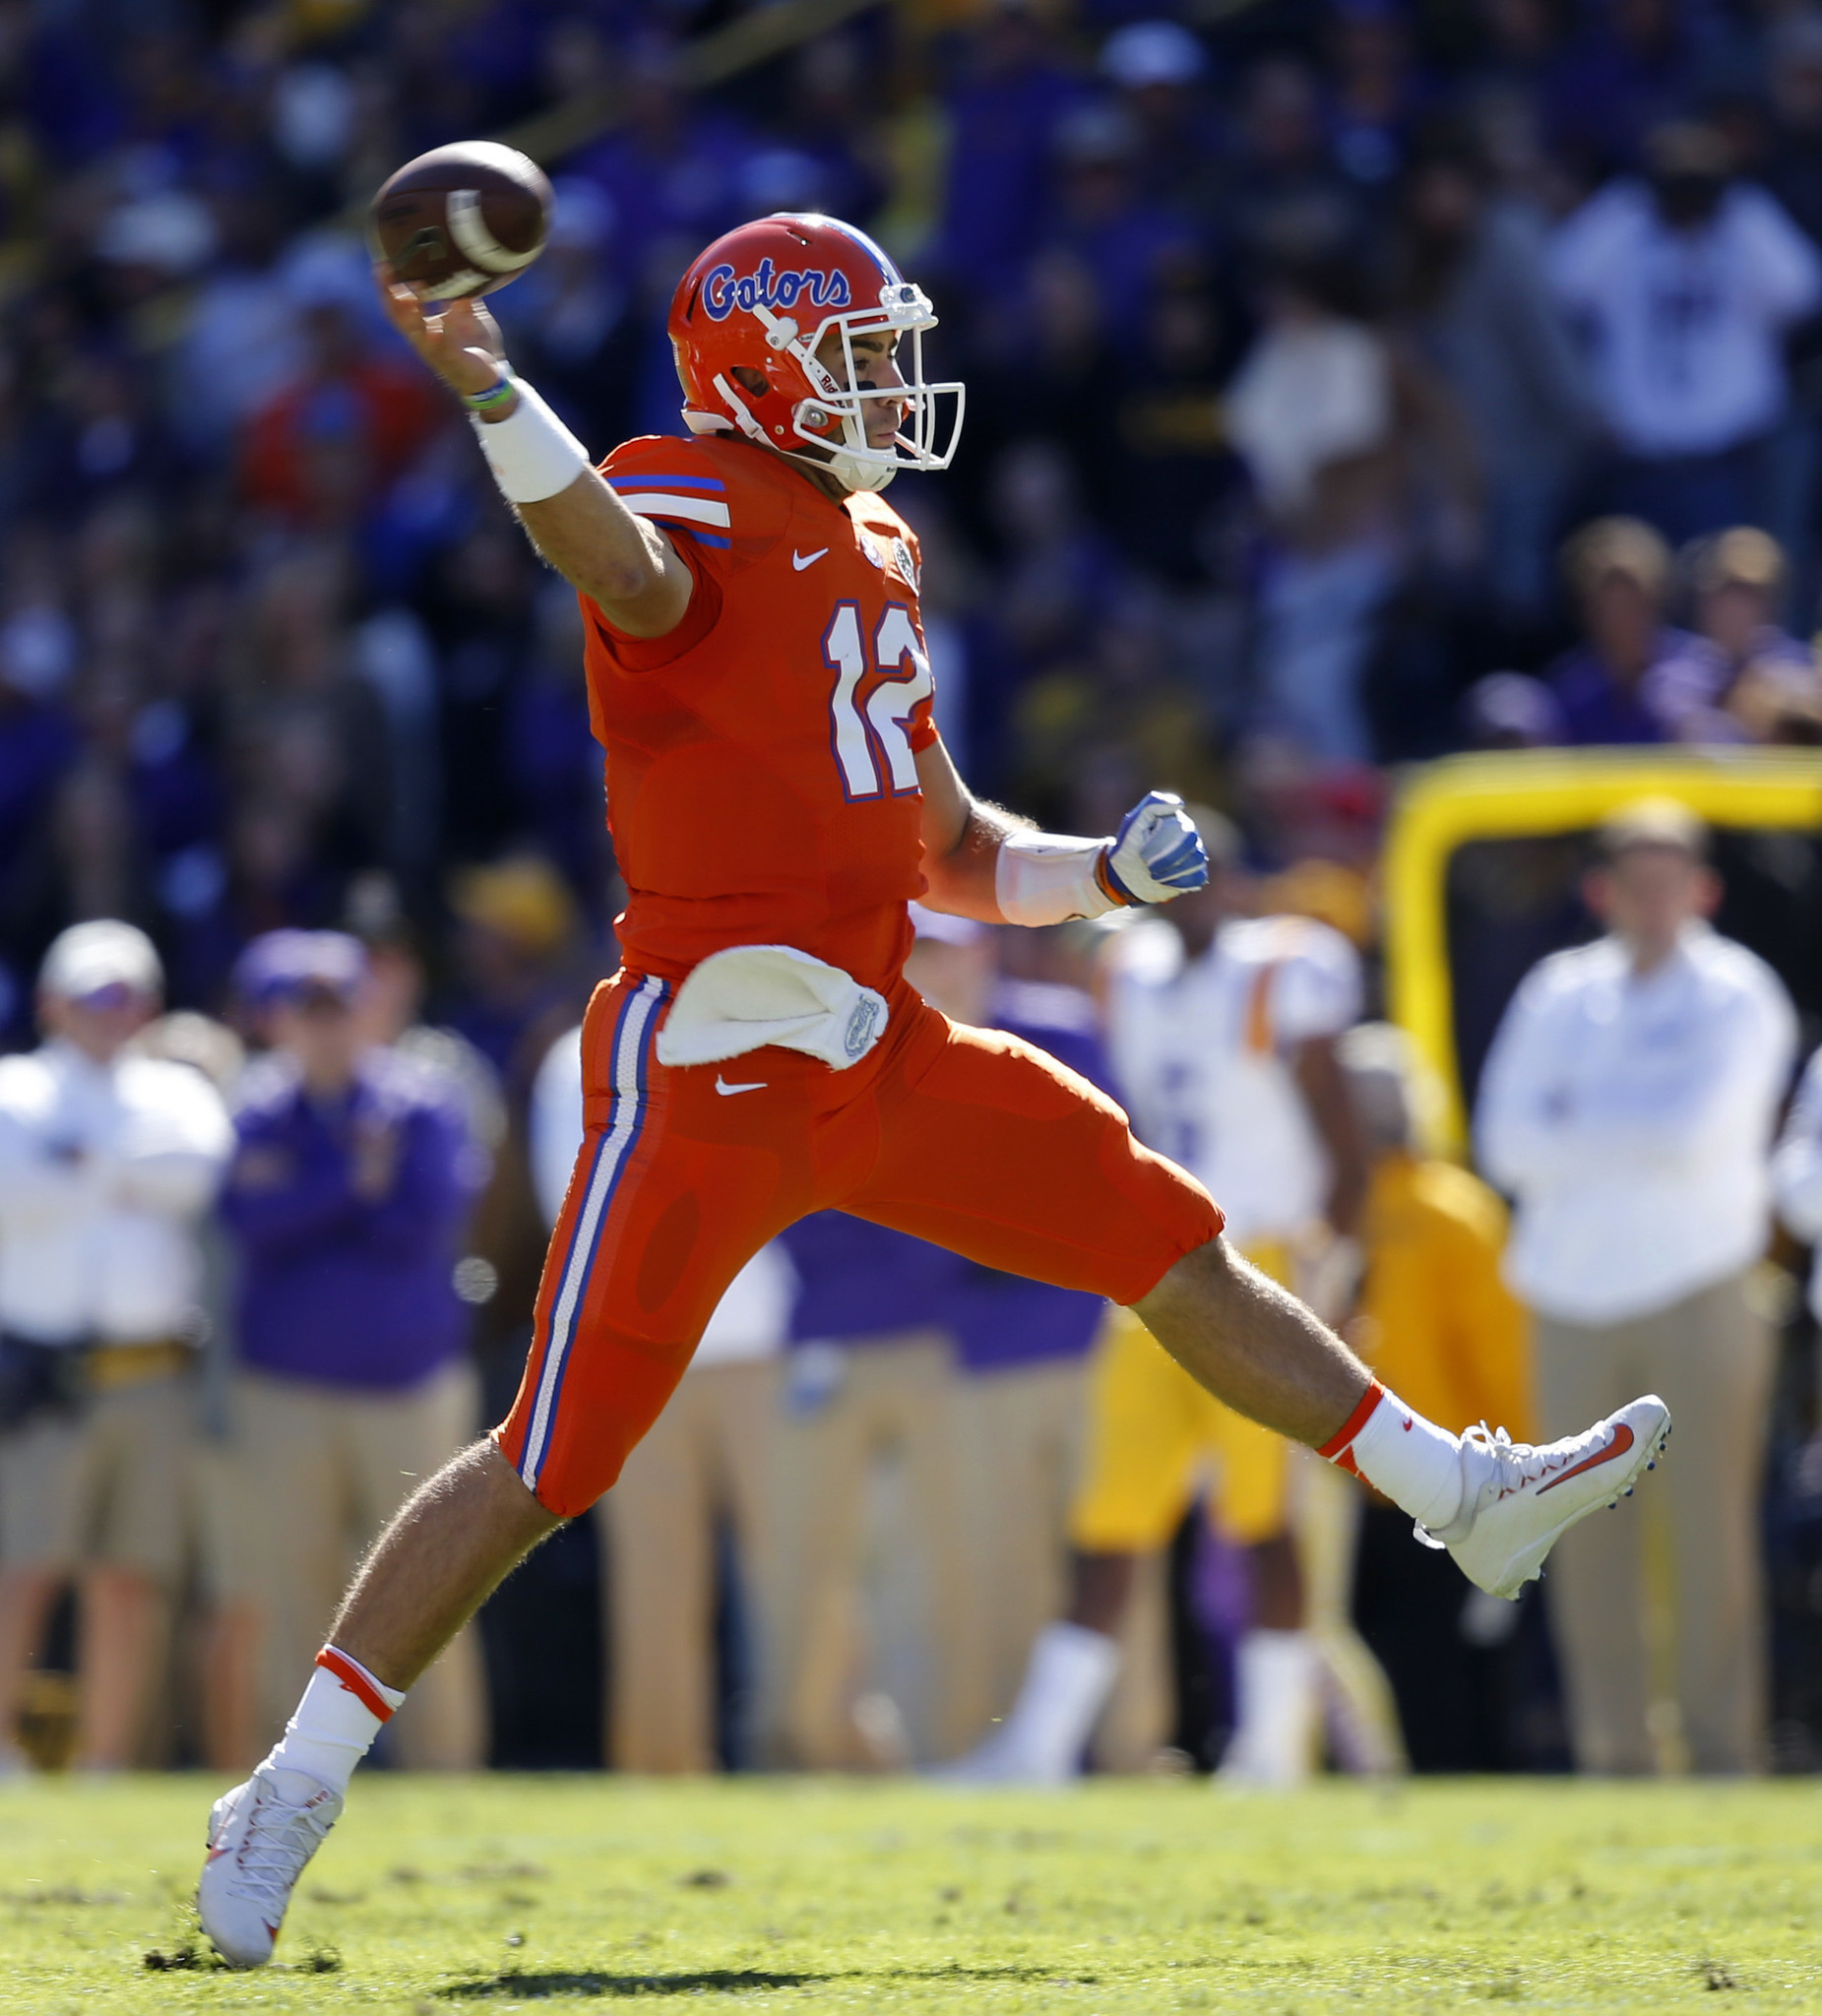 Os-gators-start-austin-appleby-quarterback-outback-bowl-20161208